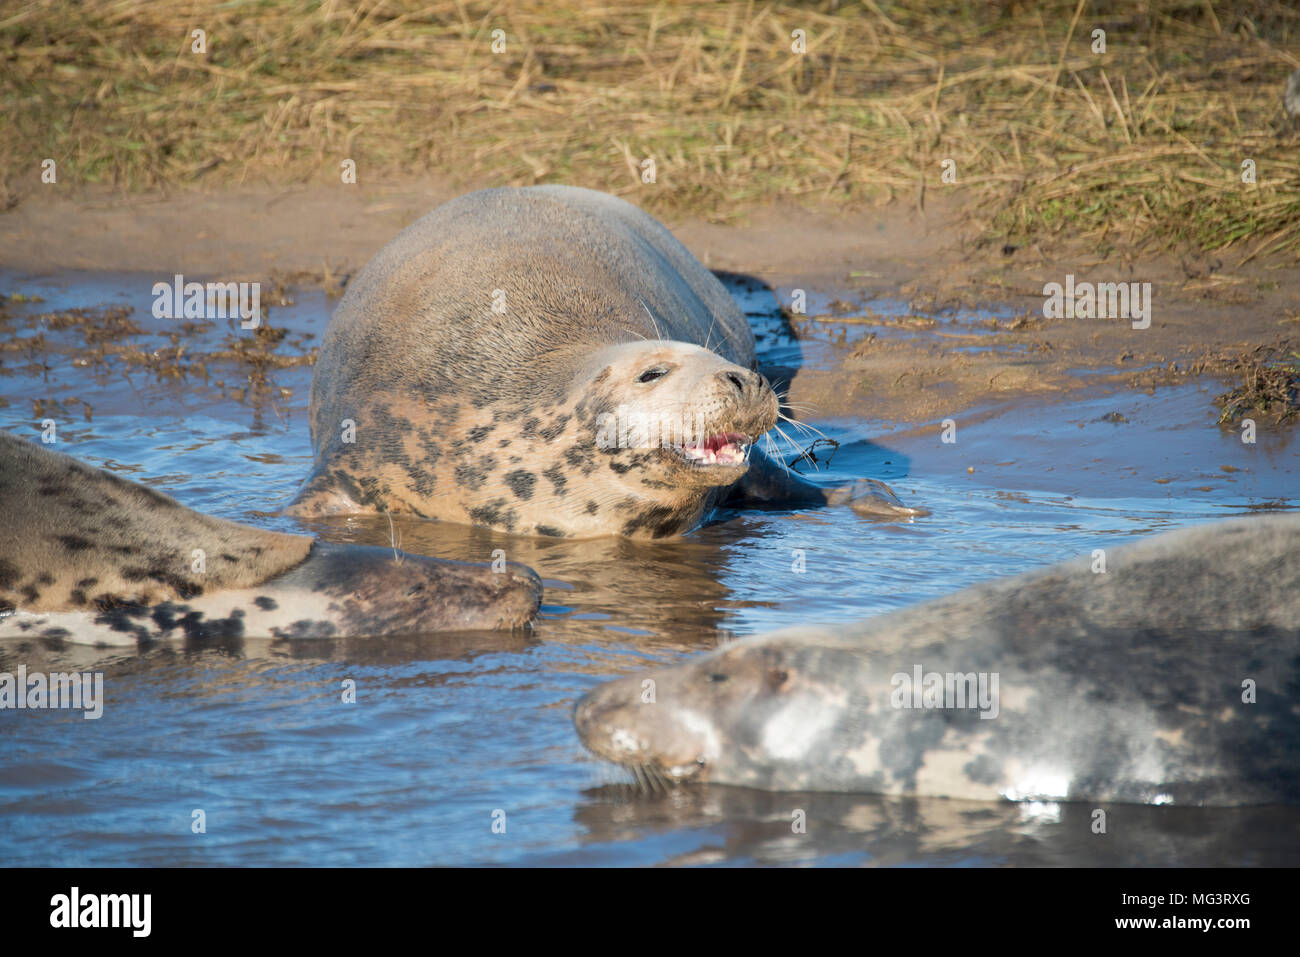 Donna Nook, Lincolnshire, UK – Nov 16: Squabbles frequently breaks out amongst grey seals come ashore for the birthing season on 16 Nov 2016 at Donna  Stock Photo